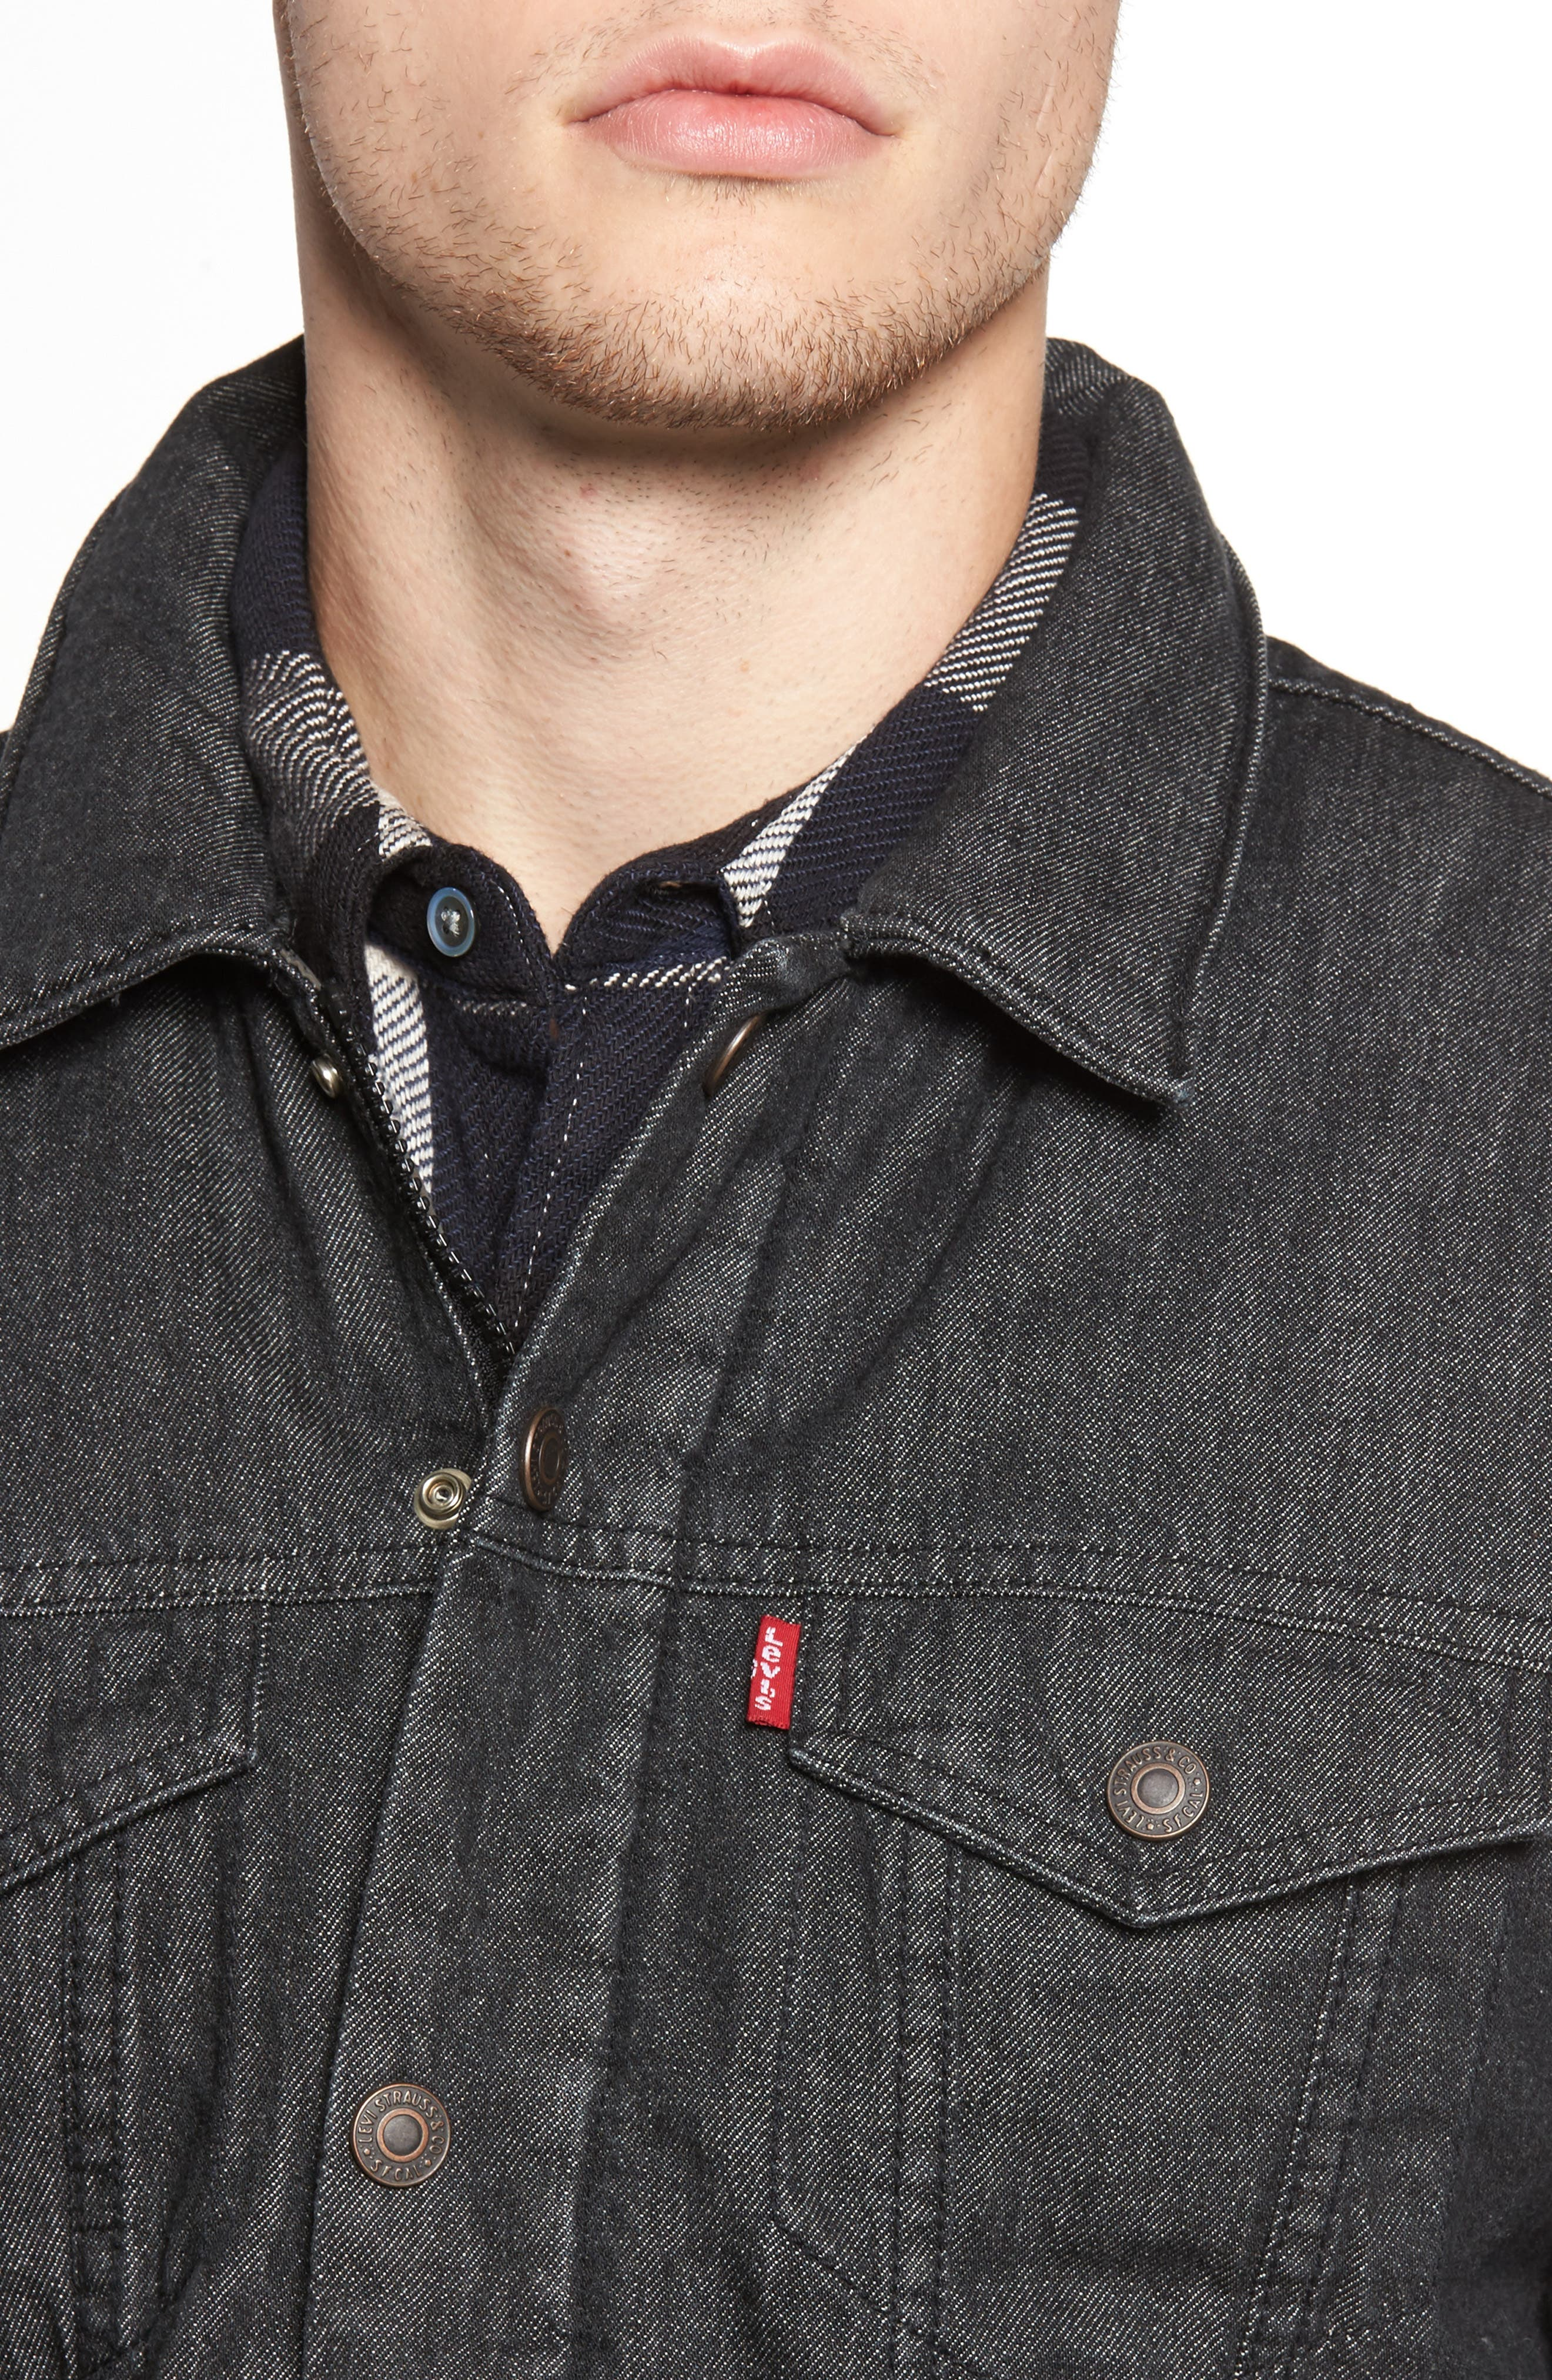 Down Insulated Trucker Jacket,                             Alternate thumbnail 4, color,